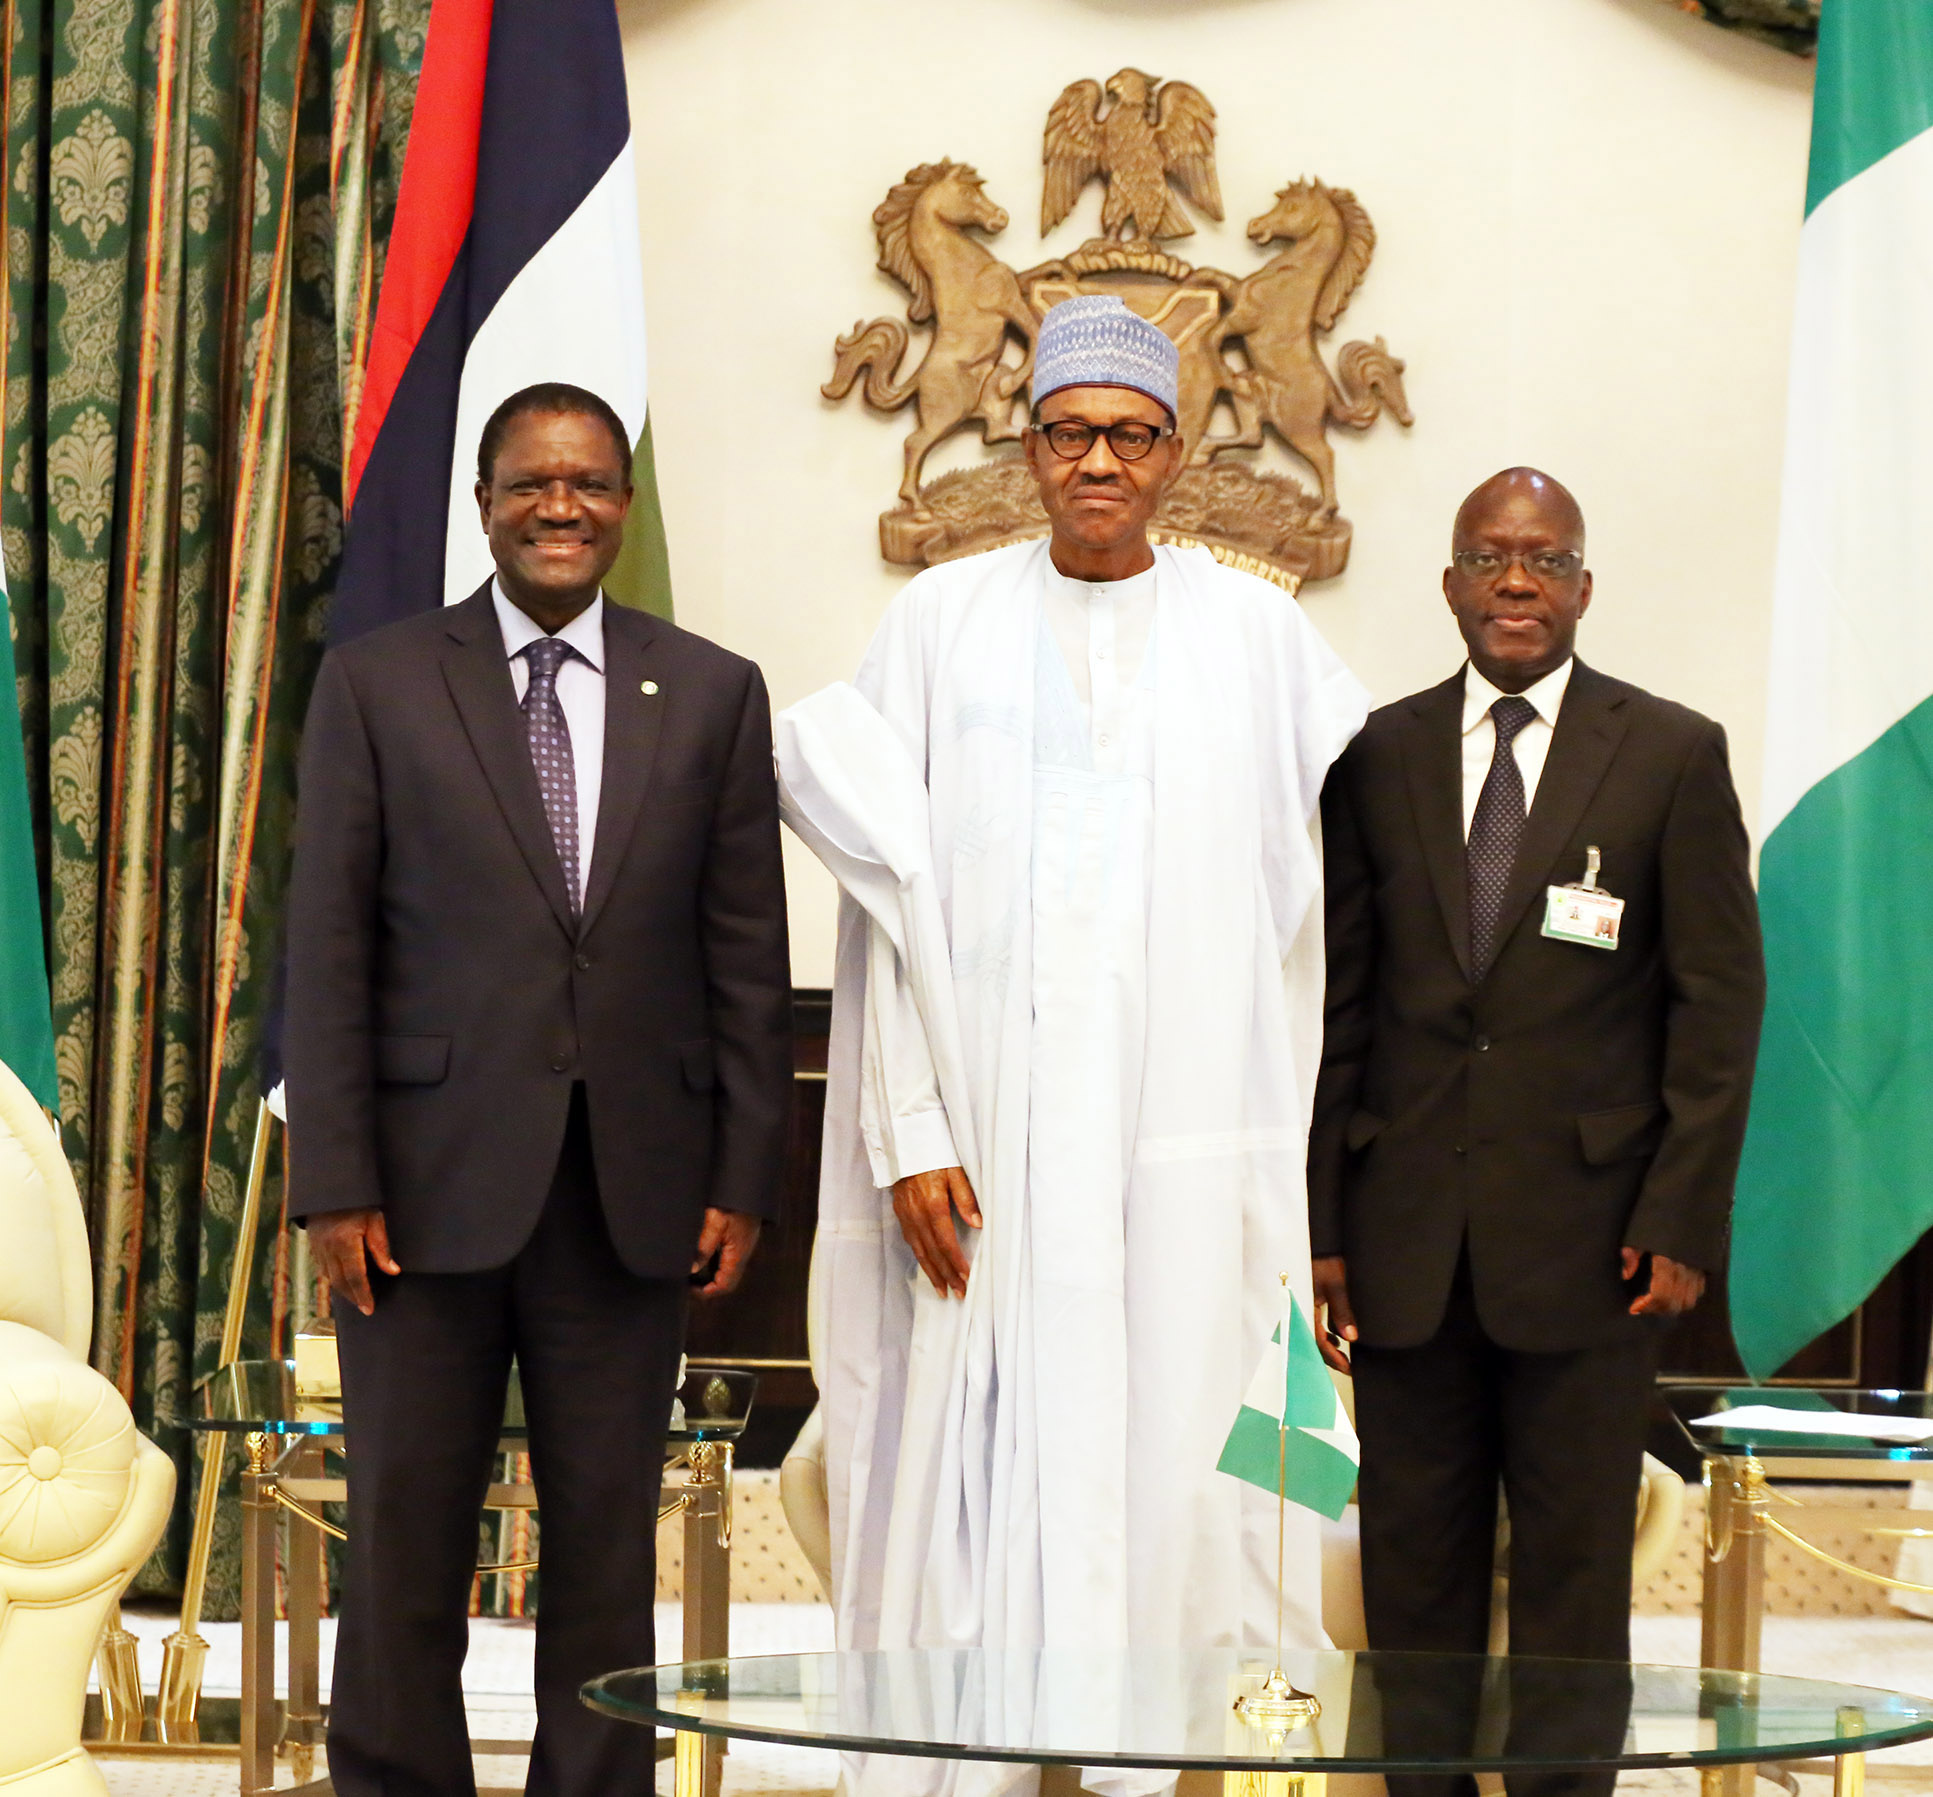 PRESIDENT BUHARI RECEIVES ECOWAS PRESIDENT 00B. President Muhammadu Buhari (M) flanked by ECOWAS President Kare Desire Ouedraogo and th Permanent Secretary Ministry of foreign Affairs, Ambassador Bulus Lolo at the Presidential Villa in Abuja. PHOTO; OFFICE OF THE PRESIDENT JUNE 25 2015